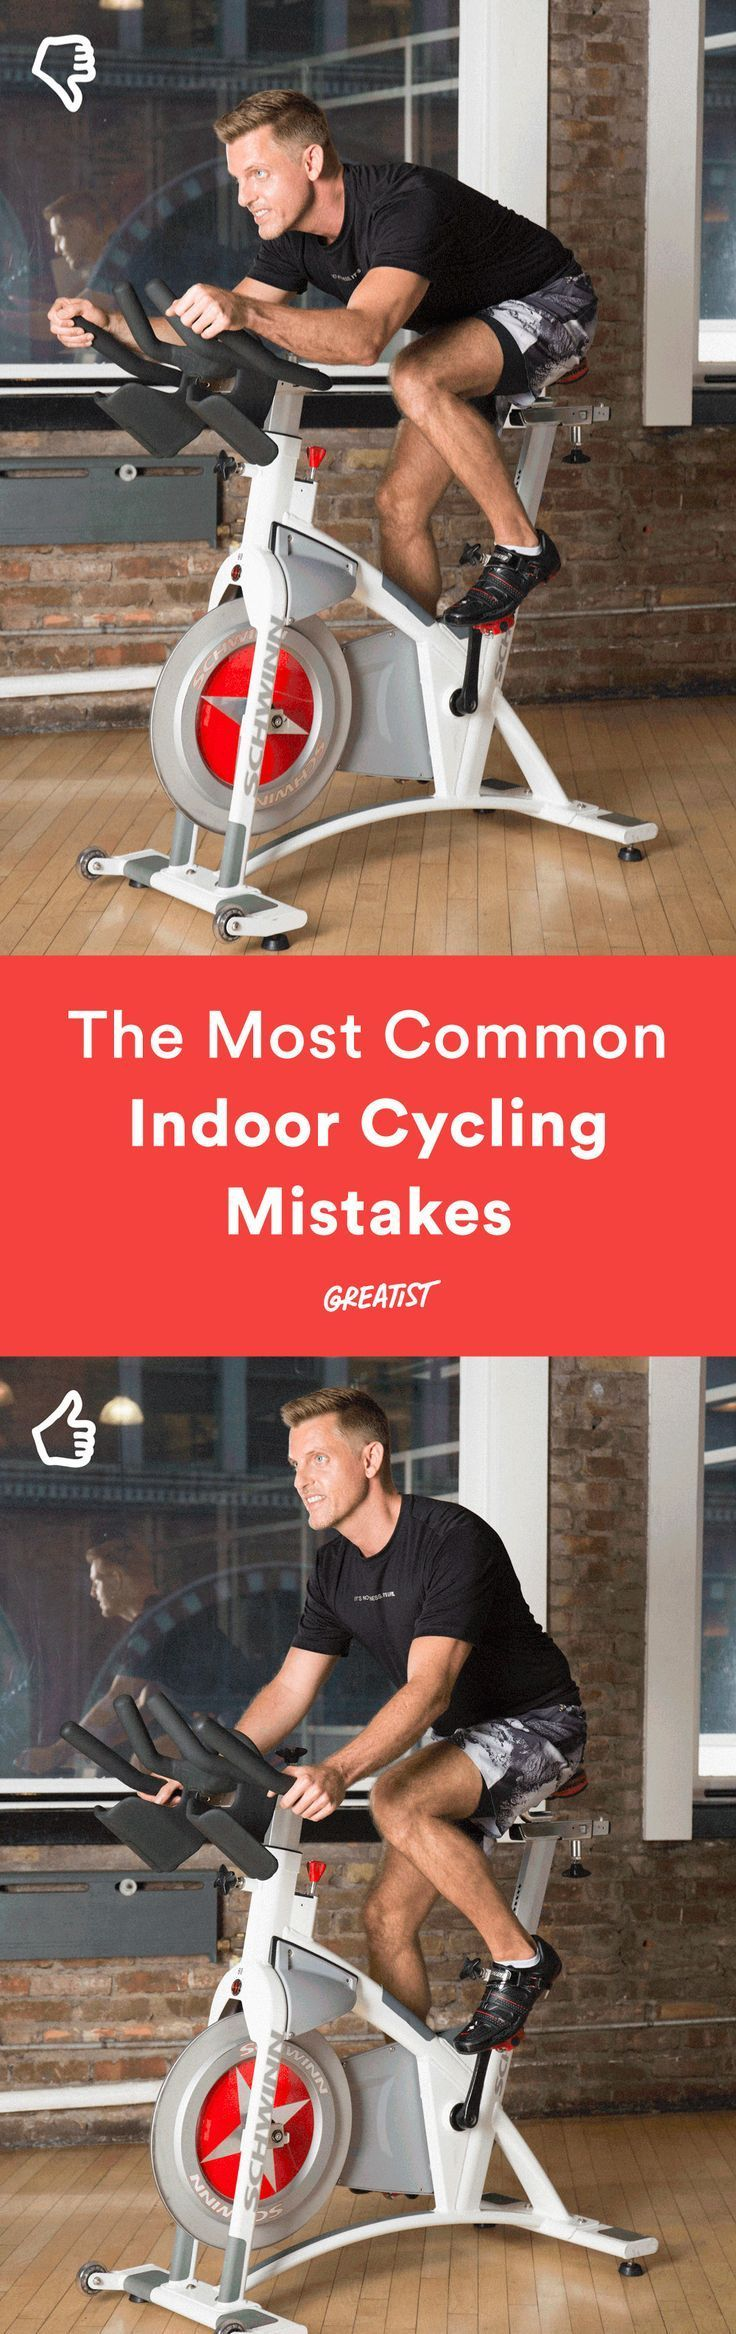 And how to fix them. #indoorcycling #spinning http://greatist.com/move/indoor-cycling-the-most-common-mistakes